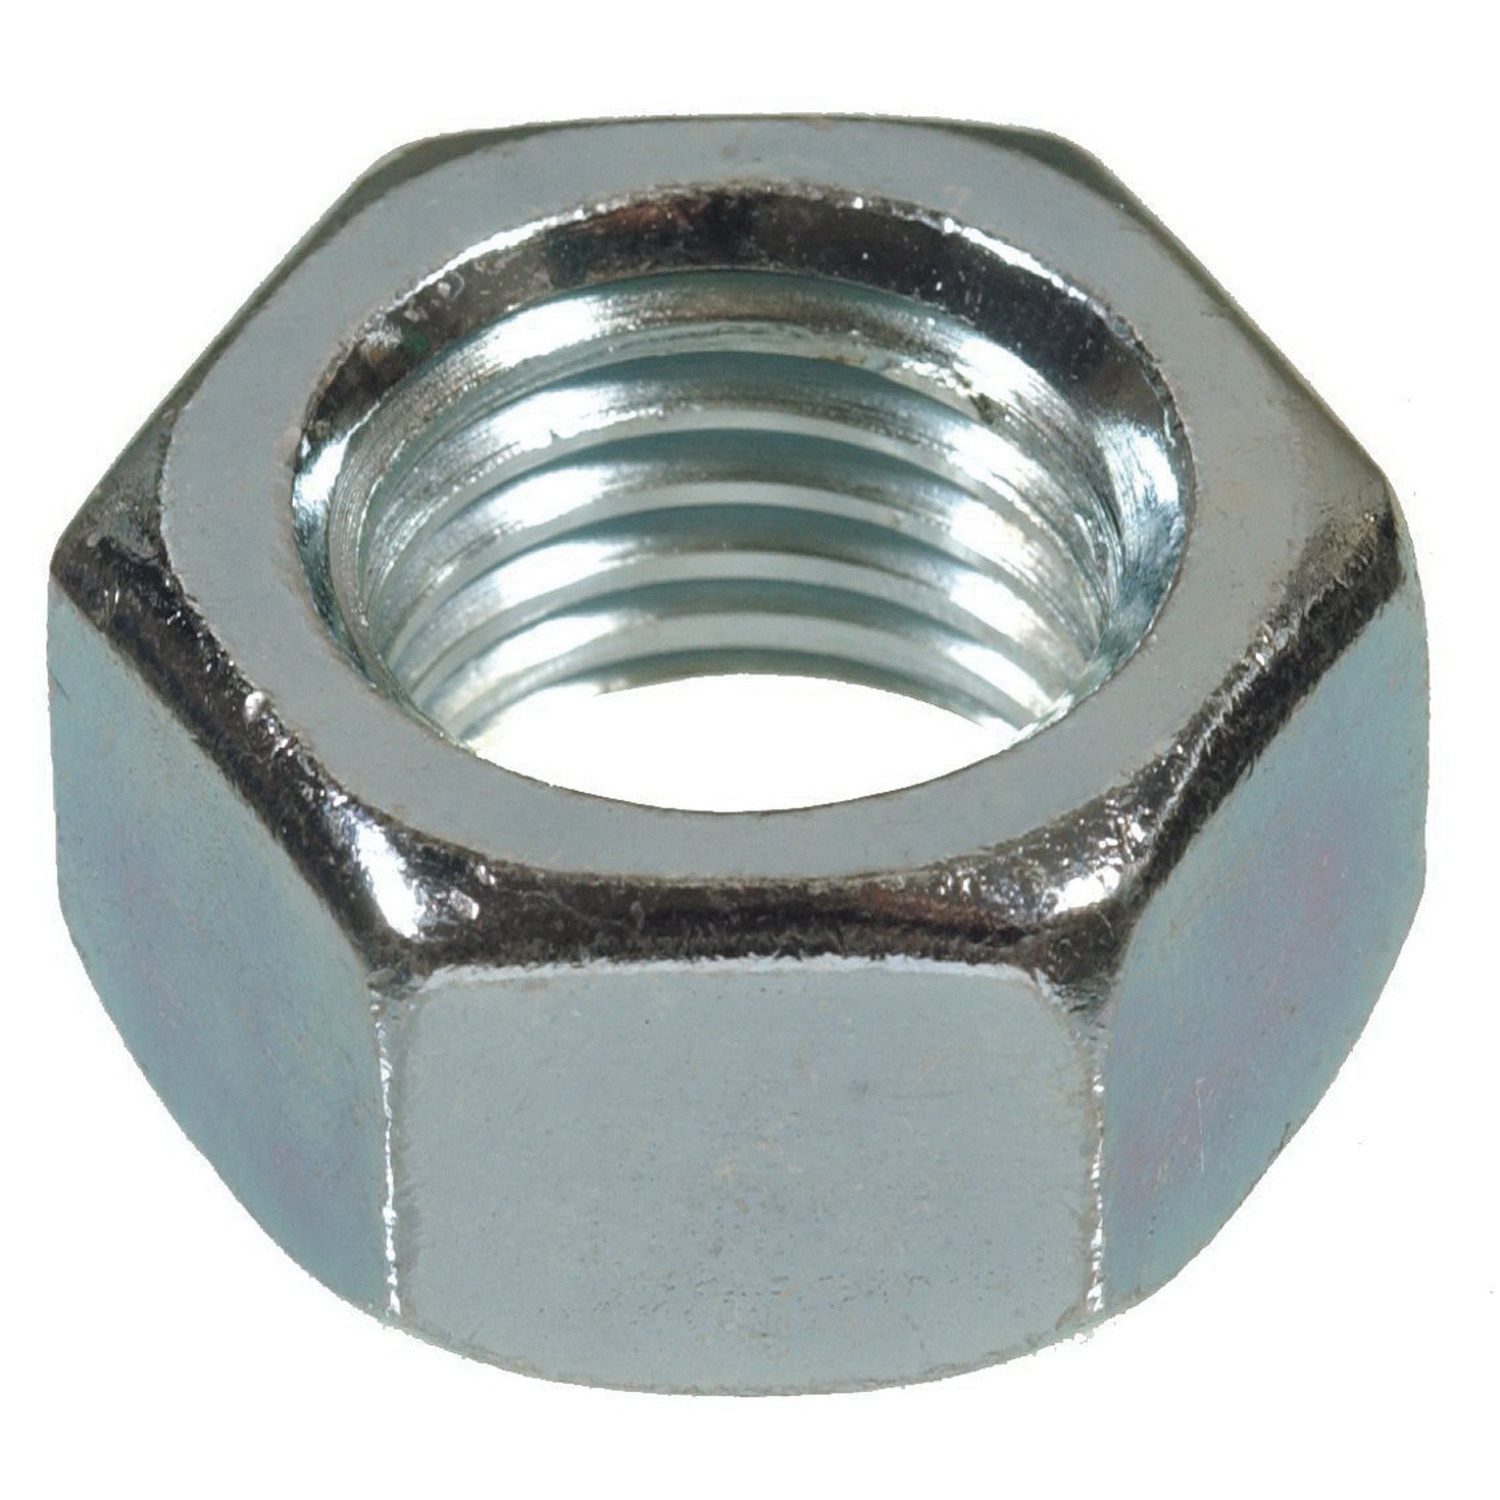 100pcs DIN 938 M12X40 Studs Metal End ~ 1 d A4 Stainless Steel ASSP0938412-40 Ships Free in USA by Aspen Fasteners